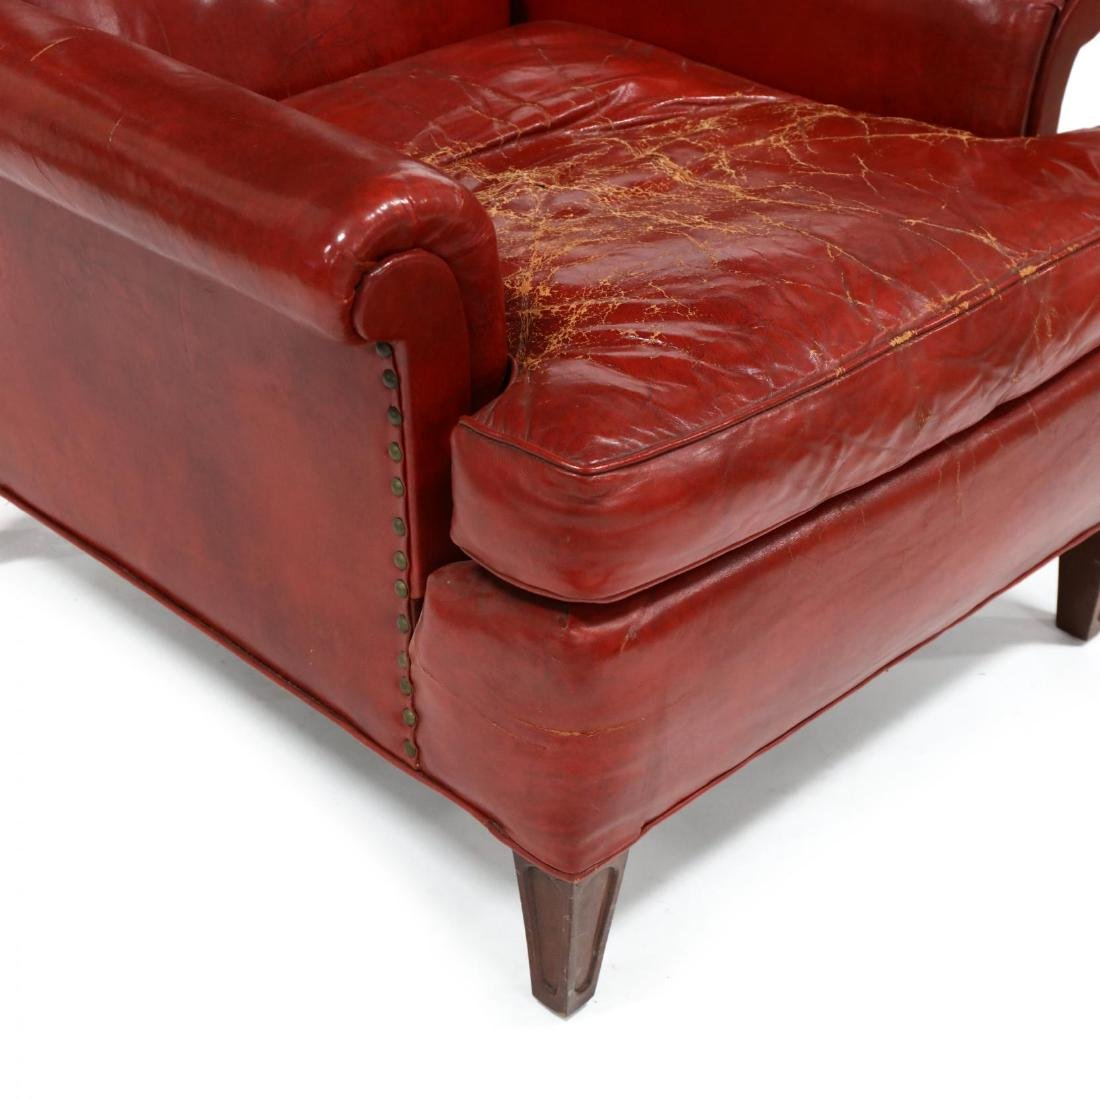 Young Furniture, Vintage Leather Lounge Chair - 3